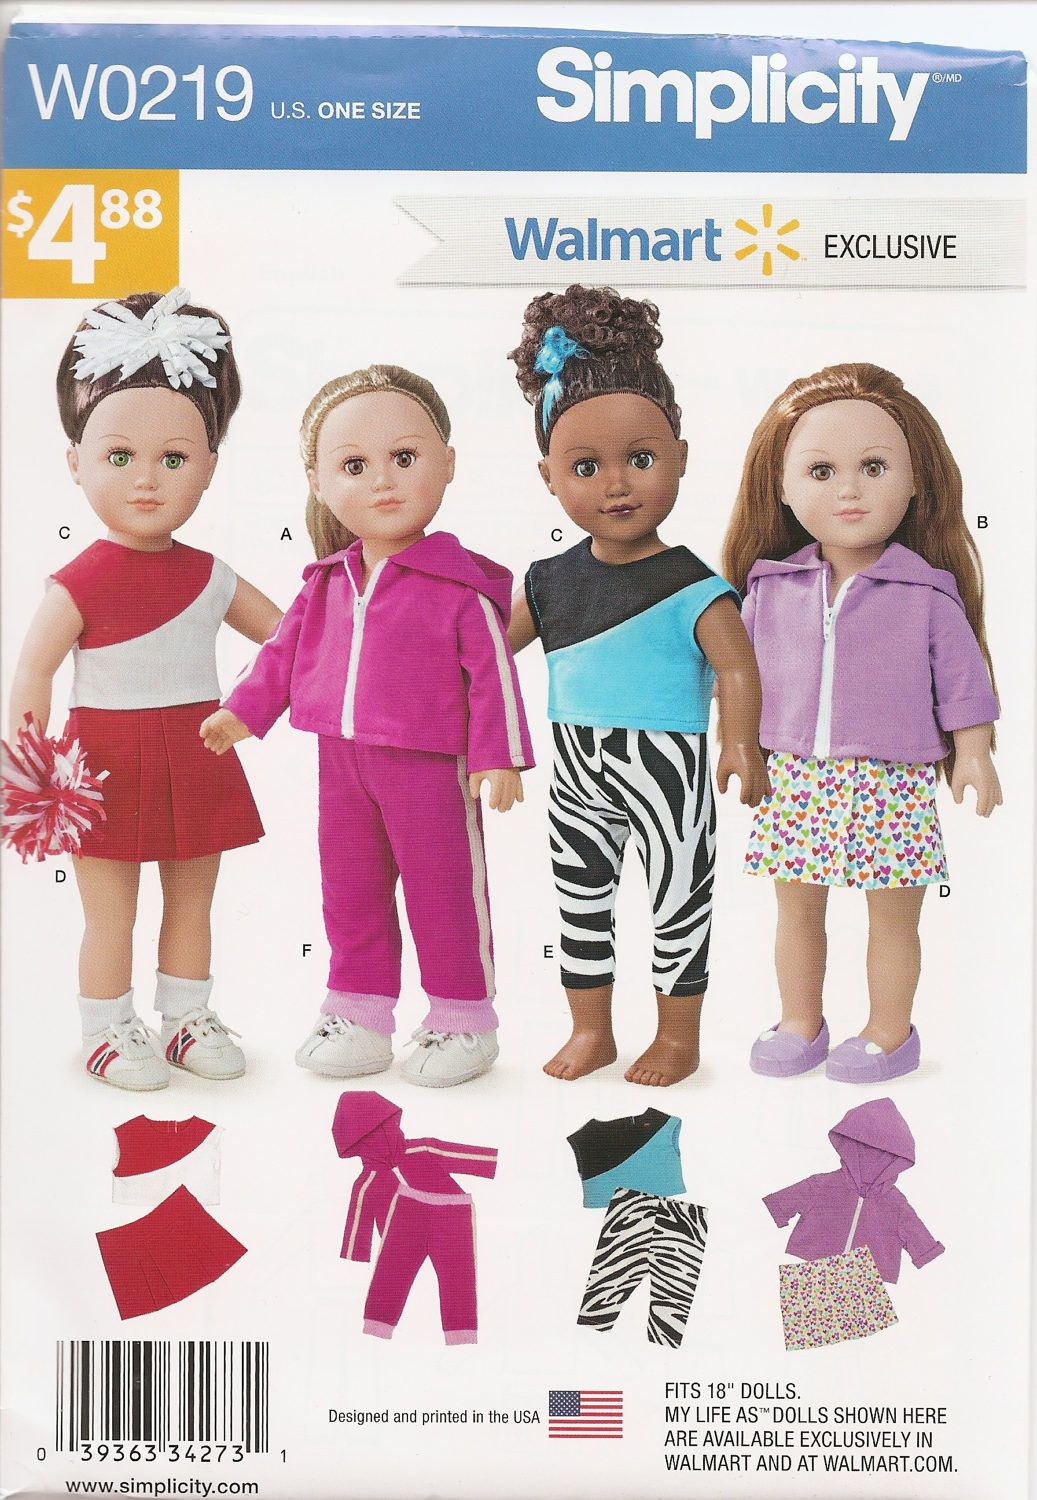 Simplicity Sewing Pattern 0219 Walmart Exclusive 18 Doll Clothes Cheerleader Pants Top Hoodie Skir Doll Clothes 18 Inch Doll Clothes Pattern Girl Doll Clothes